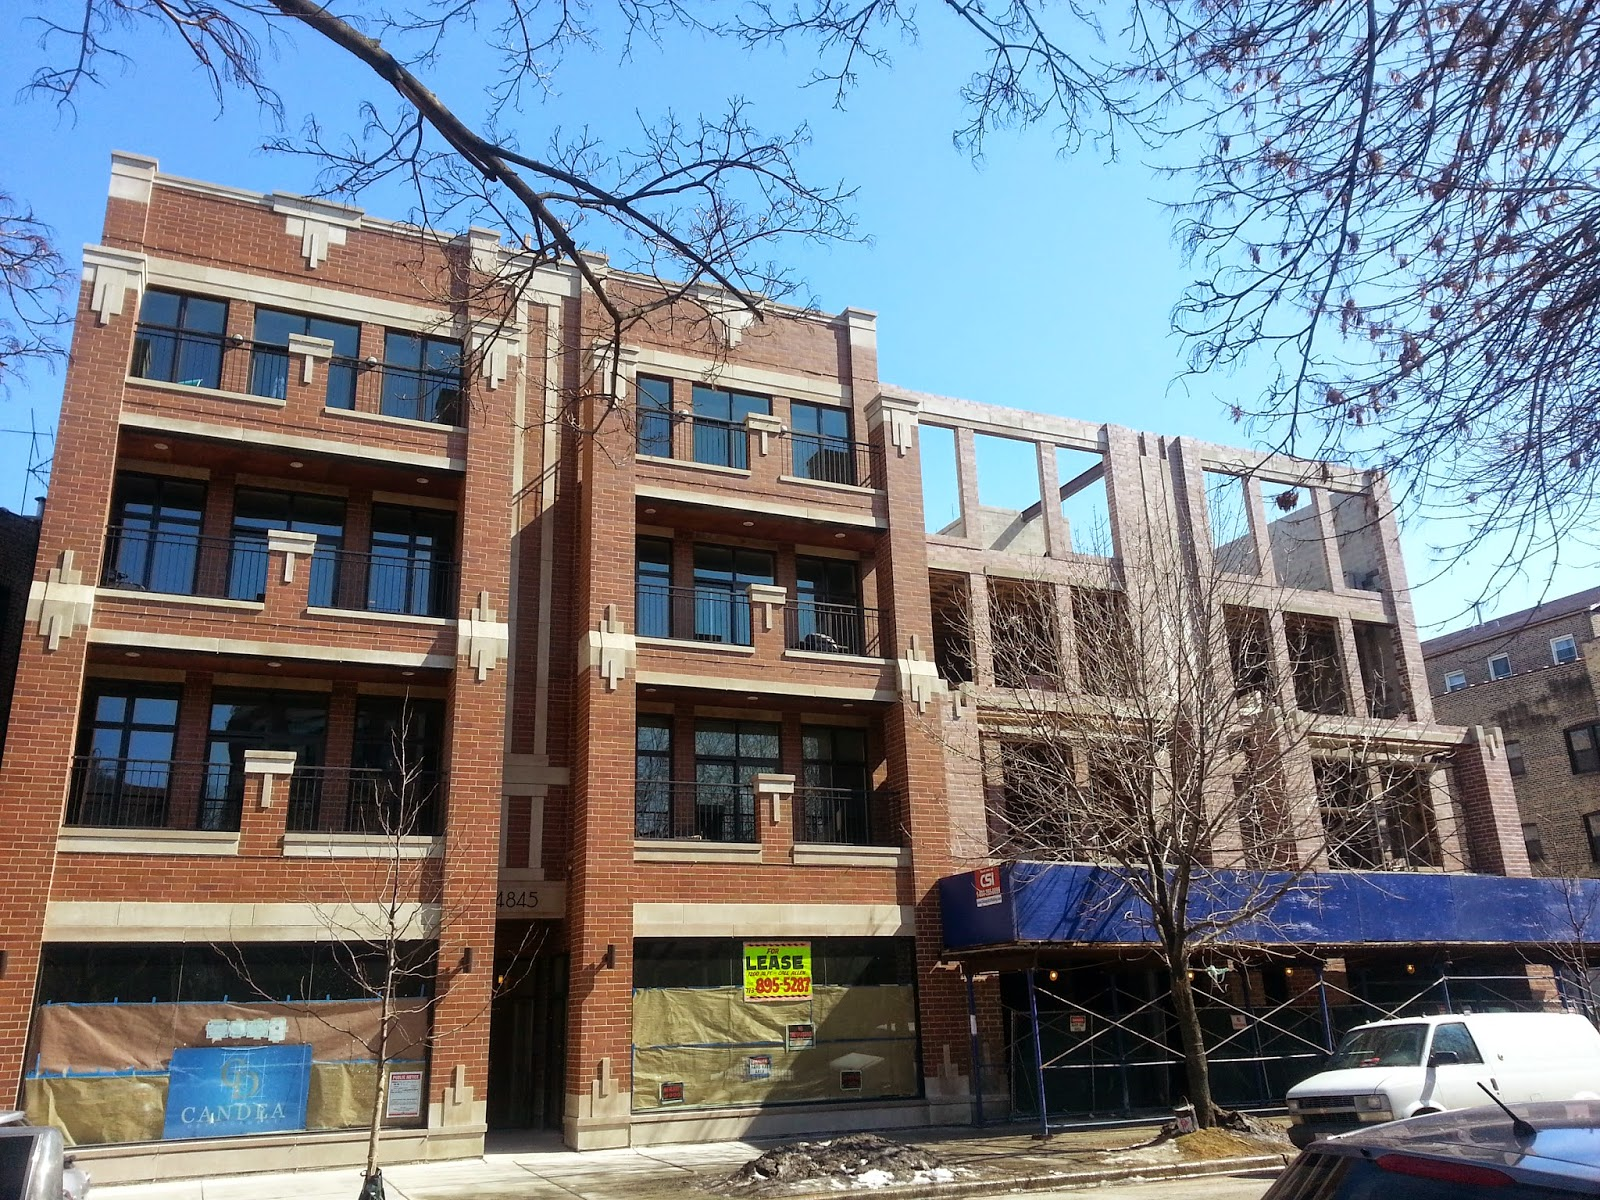 The chicago real estate local ravenswood community for Ampersand chicago